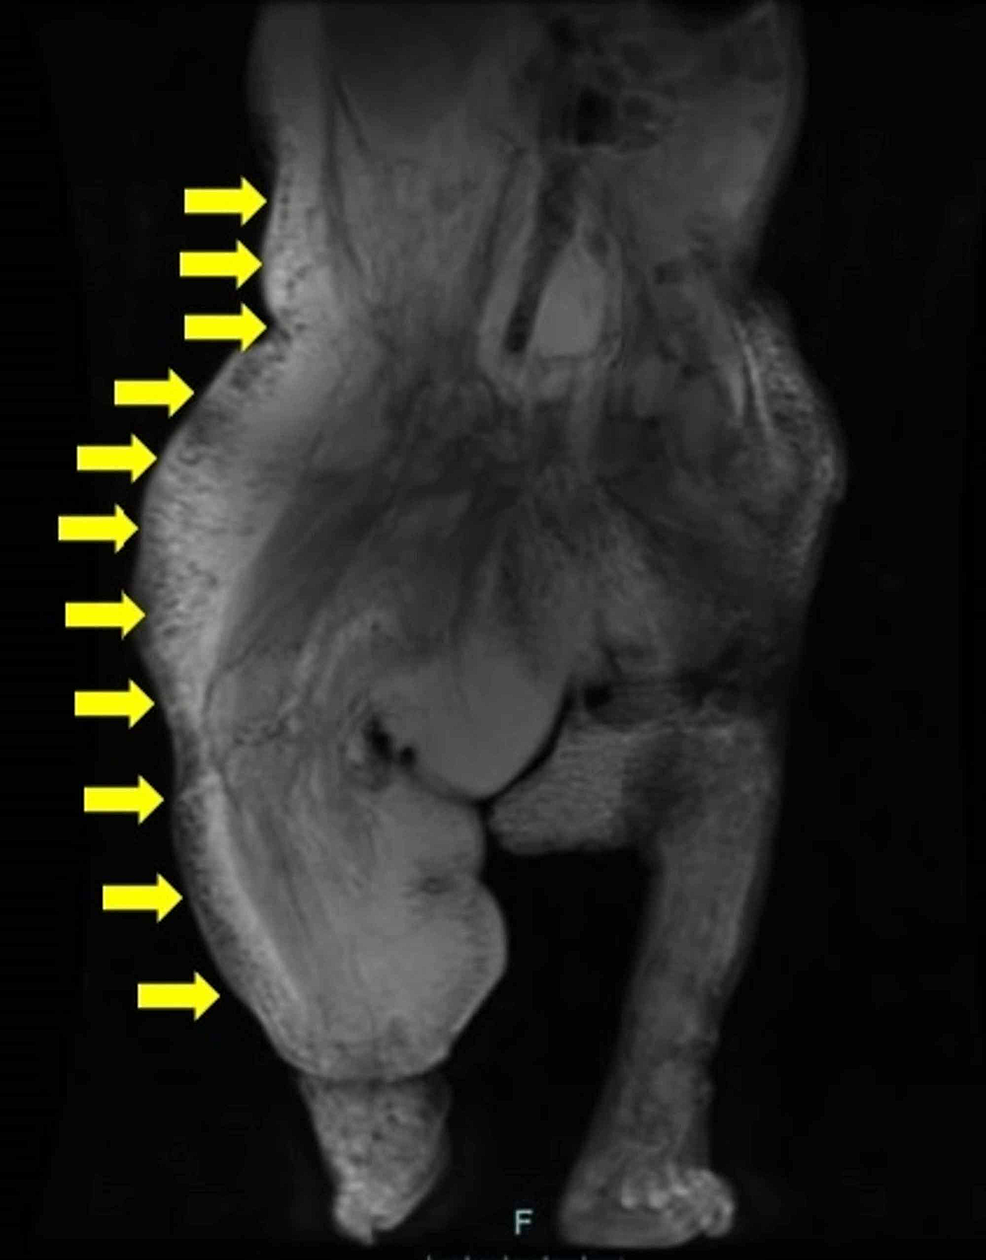 Pre-gadolinium-T2-weighted-coronal-magnetic-resonance-imaging-(MRI)-scan-showed-white-lymphatic-malformations-in-most-of-the-right-side-of-the-body-(yellow-arrows)